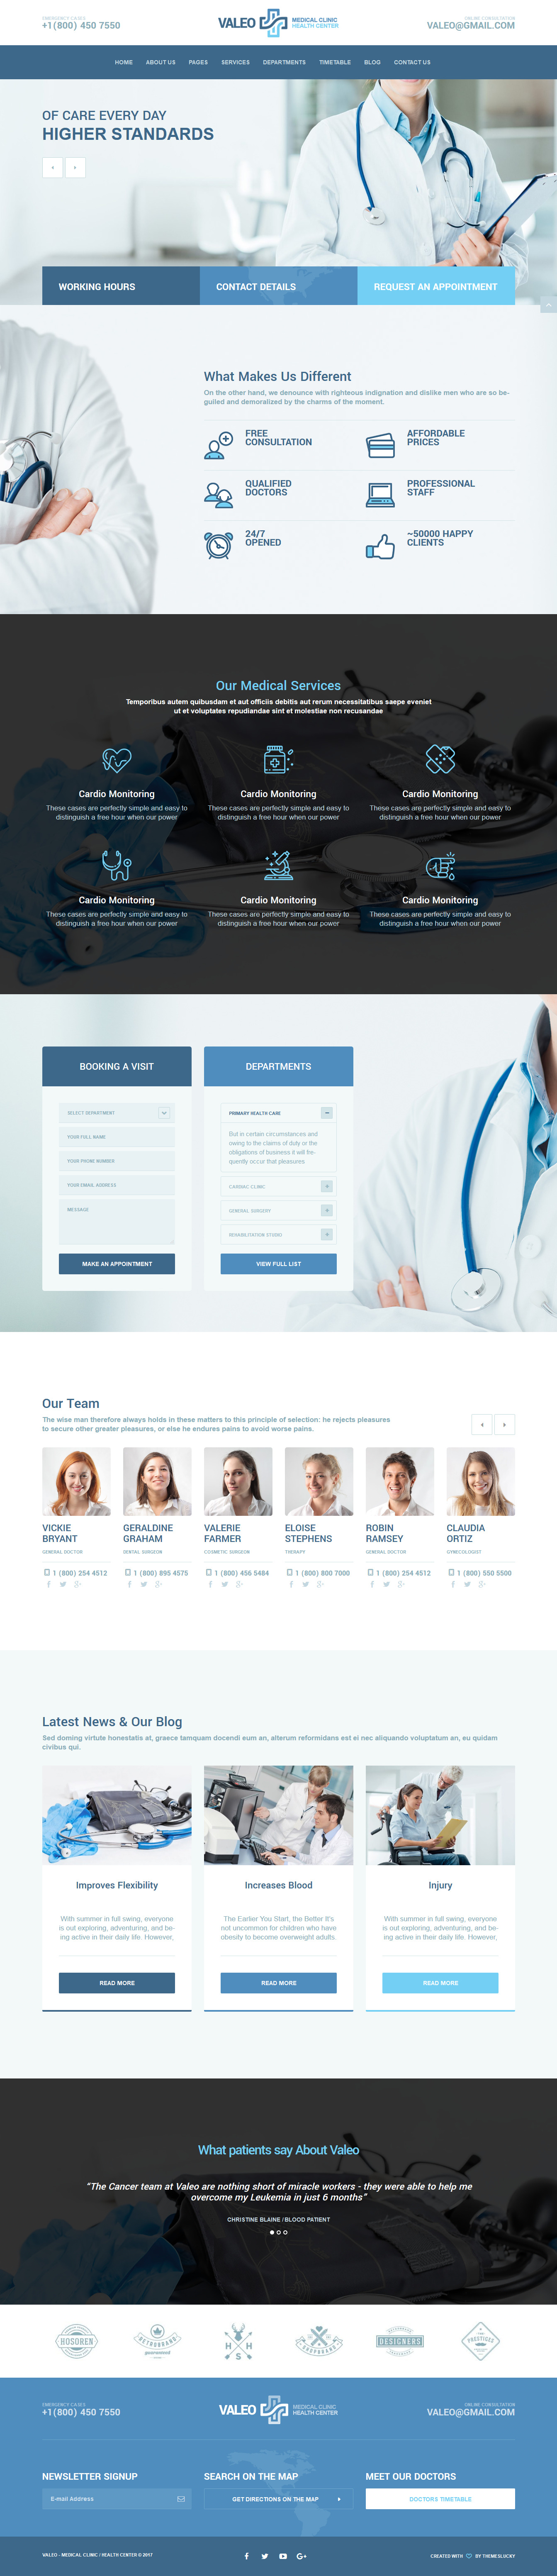 Valeo - Best Premium Hospital WordPress Theme